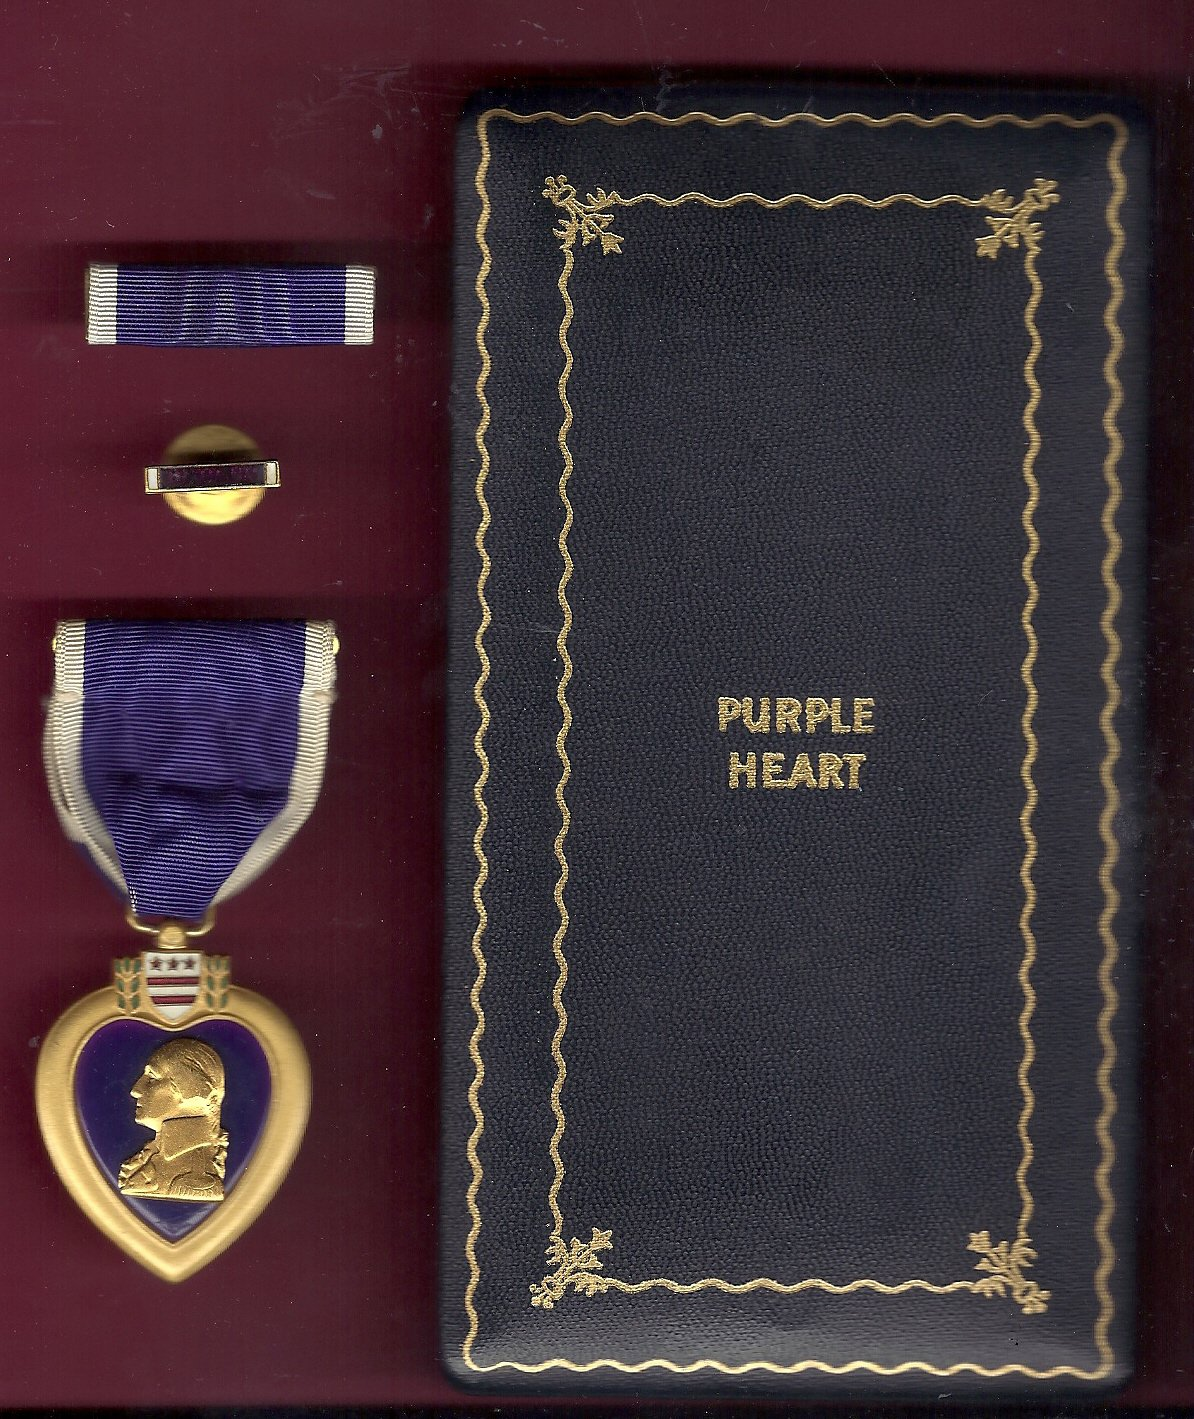 Wwii Purple Heart Medal In Case With Ribbon Bar And Lapel